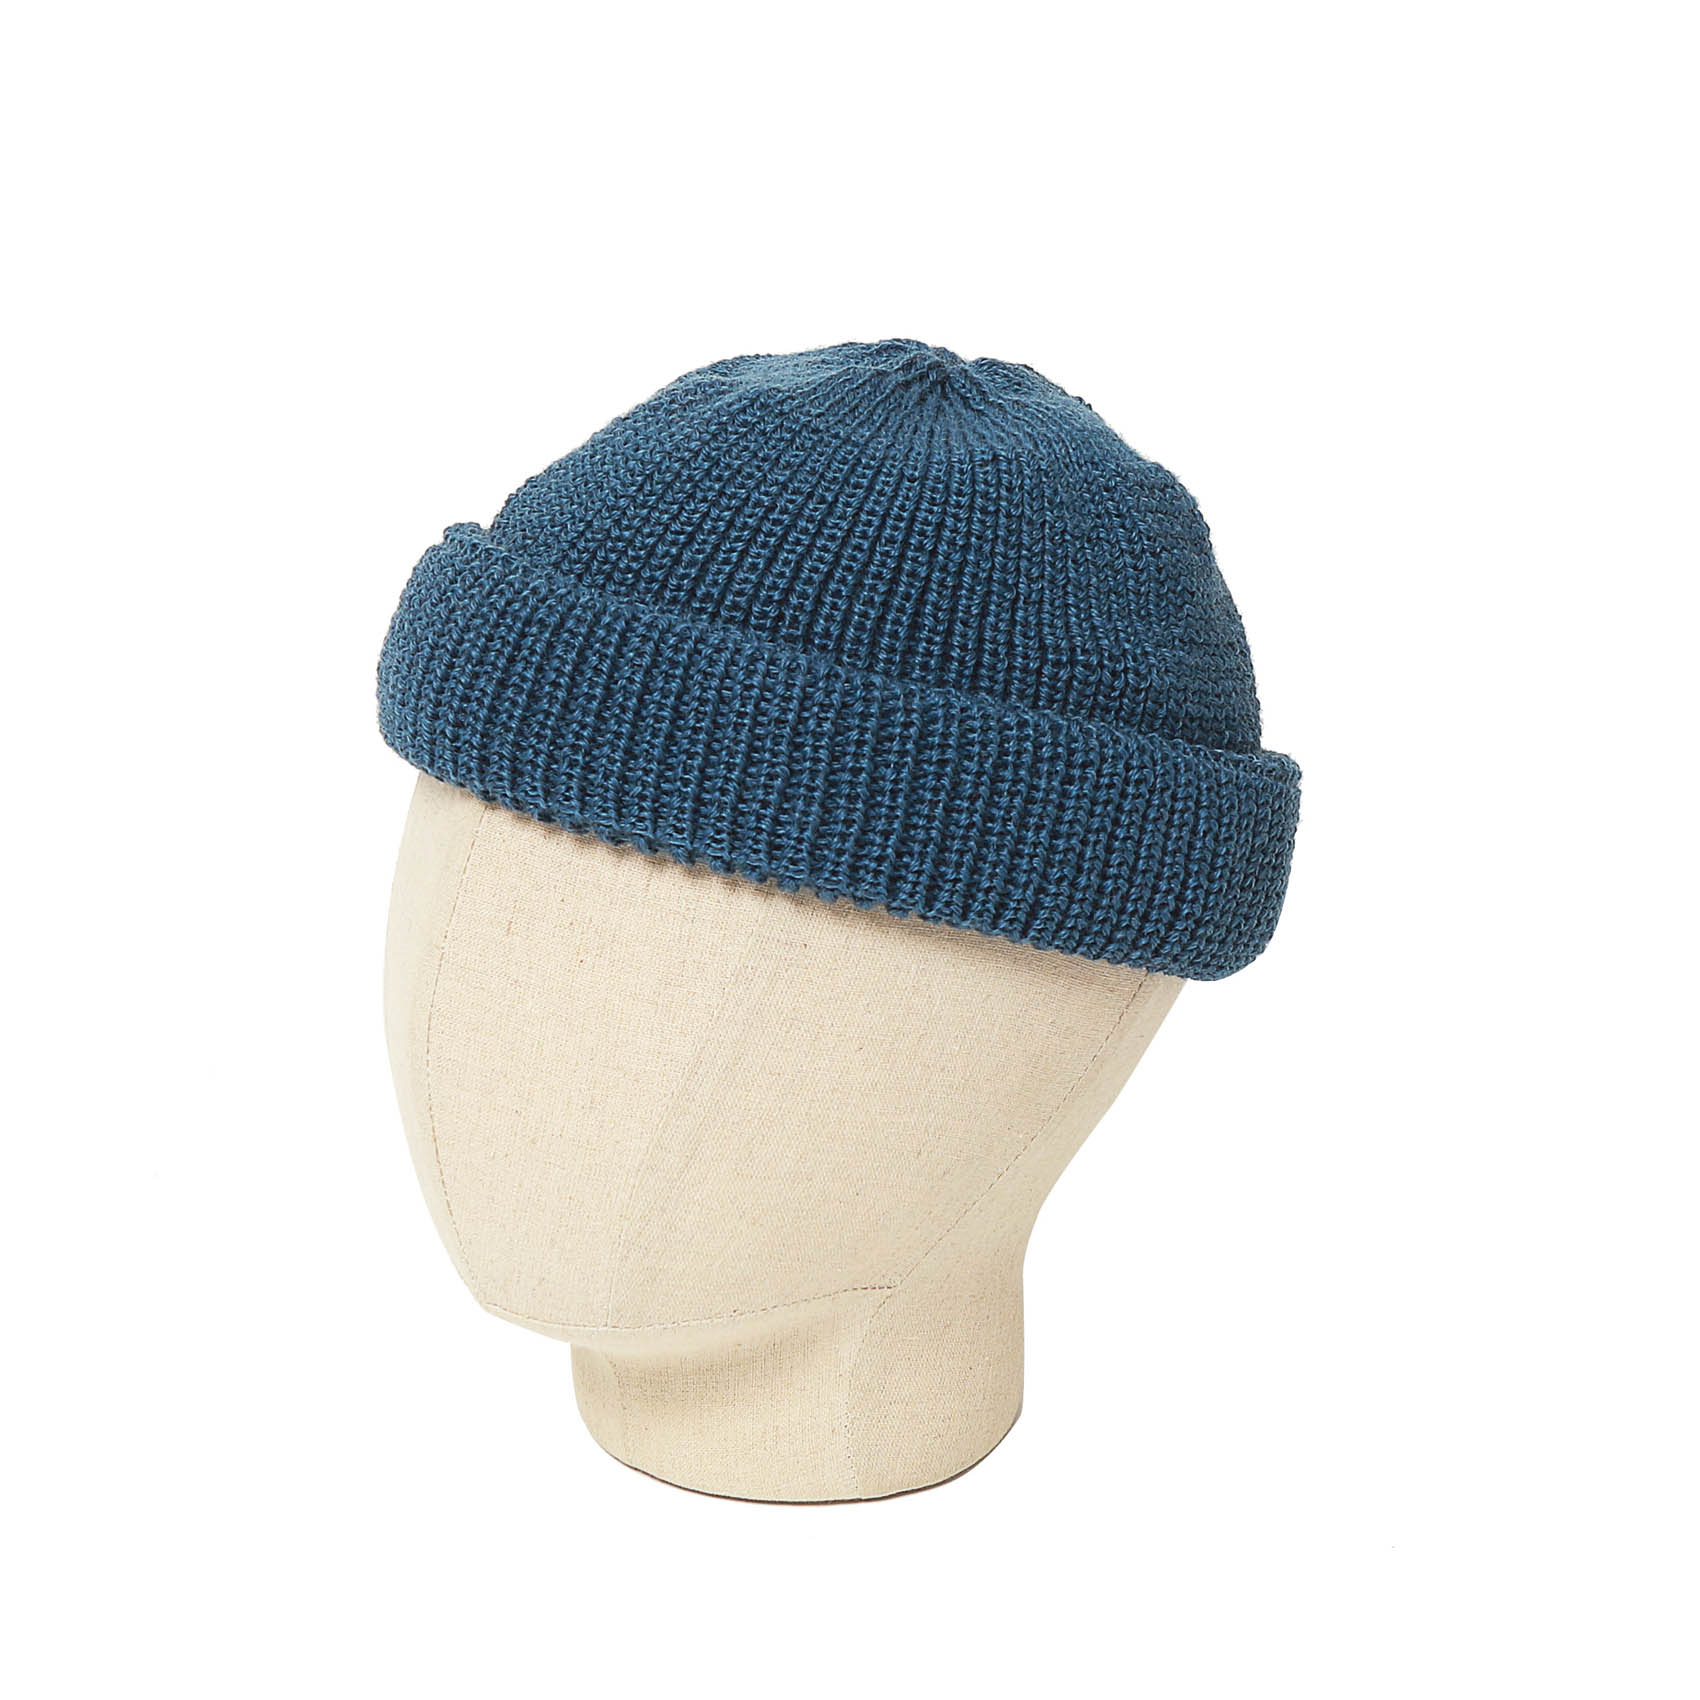 DECK HAT - BLUE